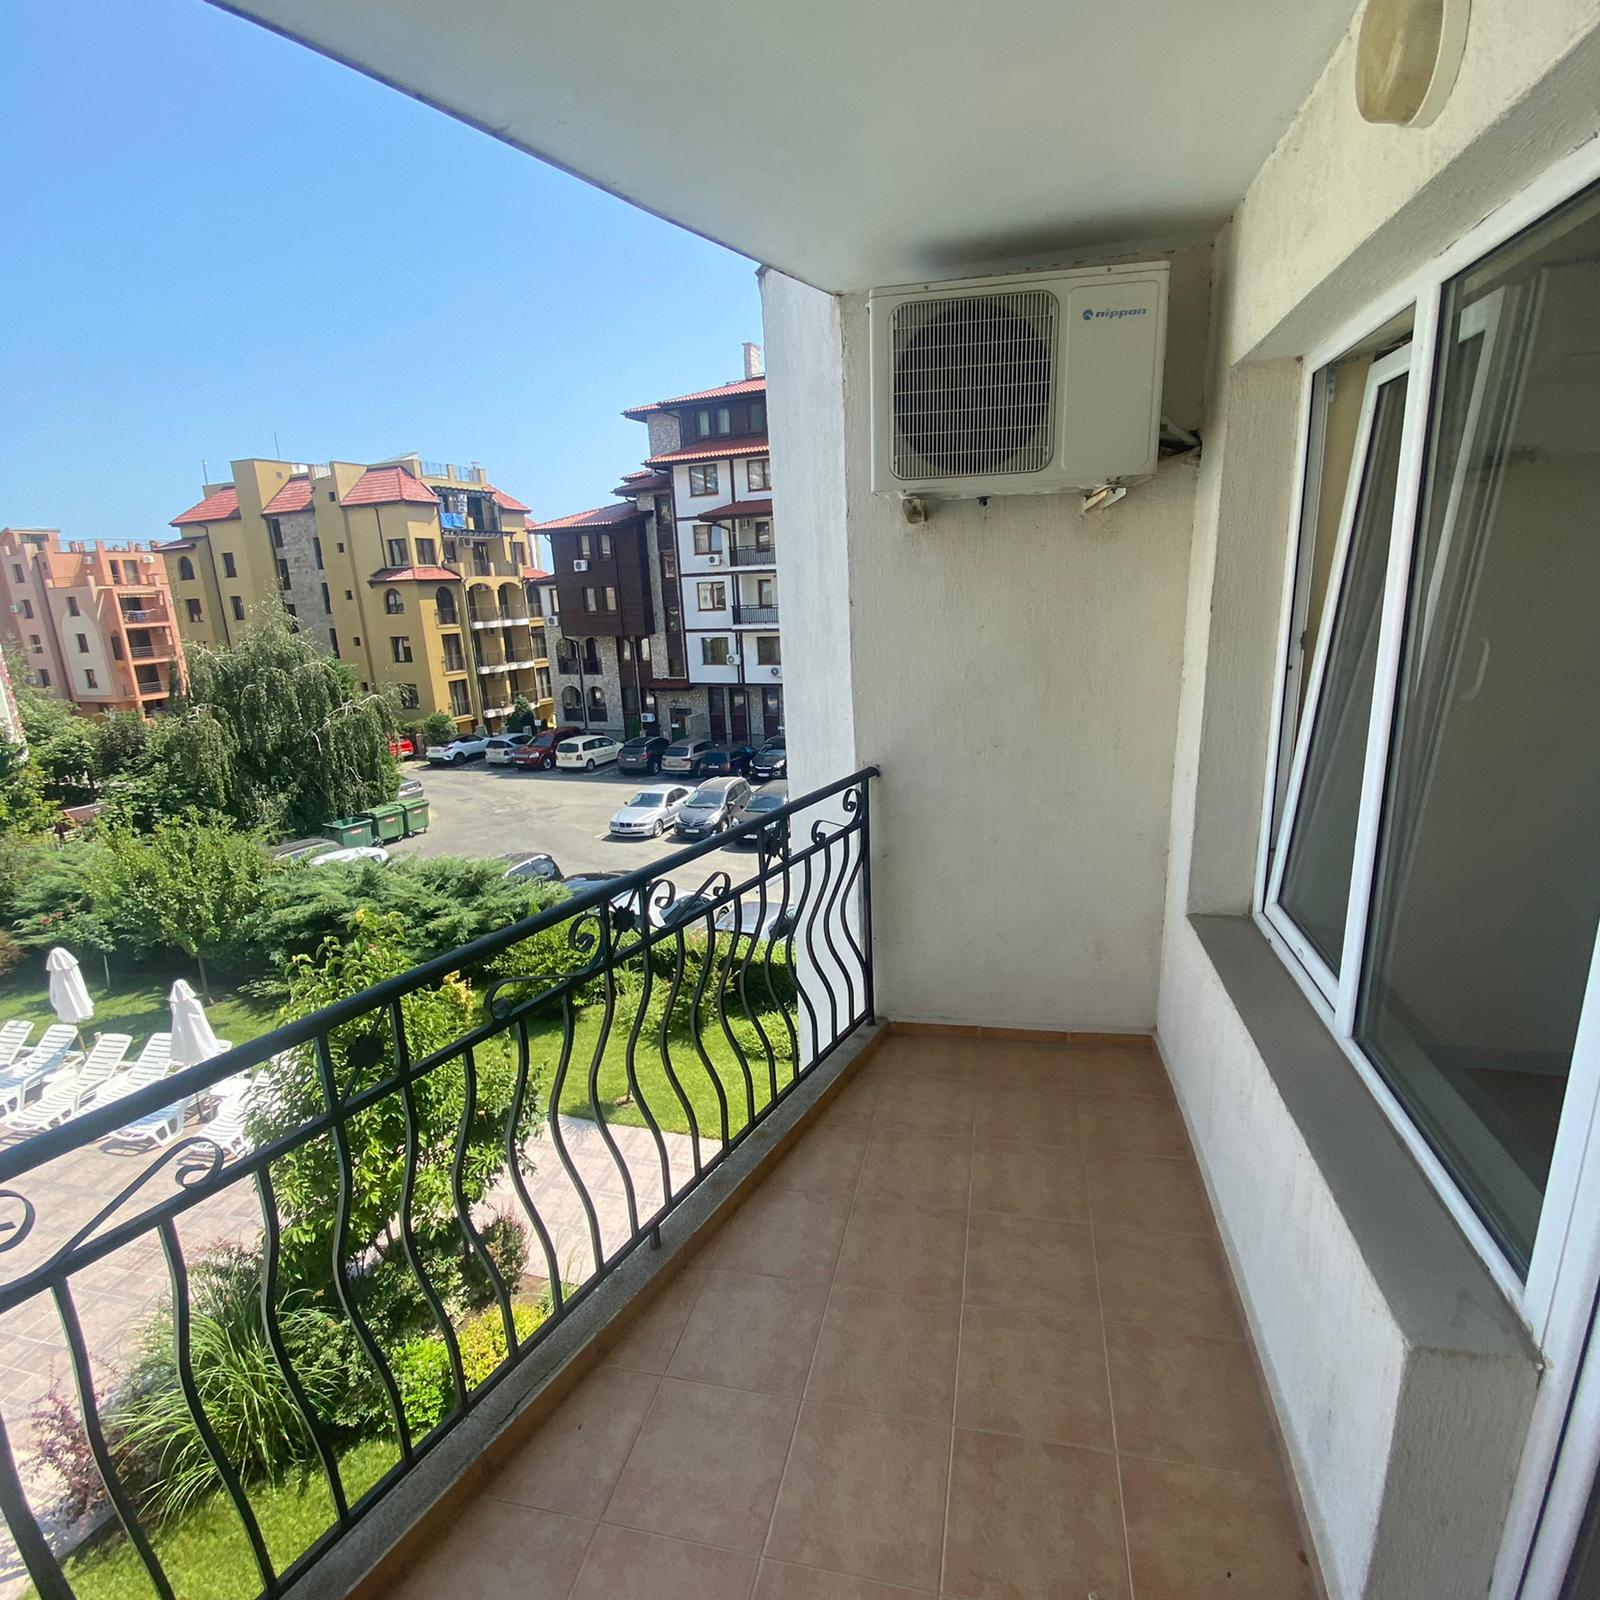 For Sale: Affordable apartment 250 meters from the beach in Saint Vlas.